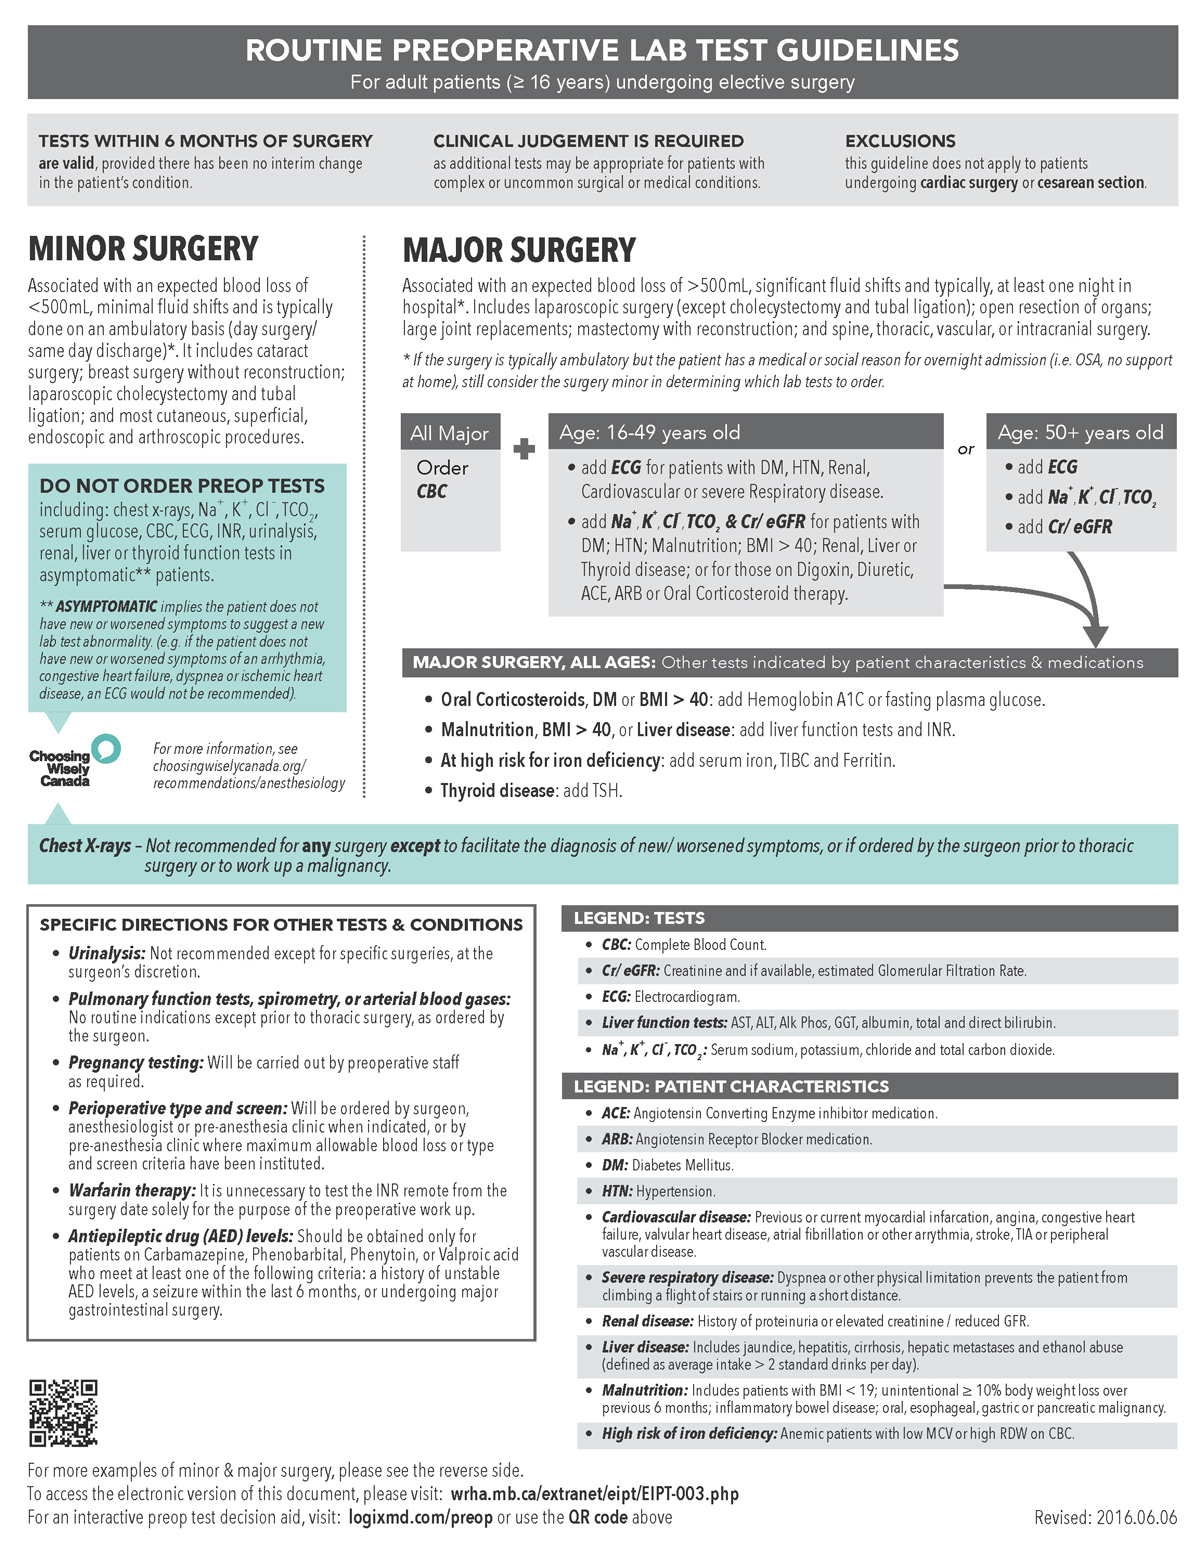 Choosing Wisely Canada Routine Preoperative Lab Test Guidelines